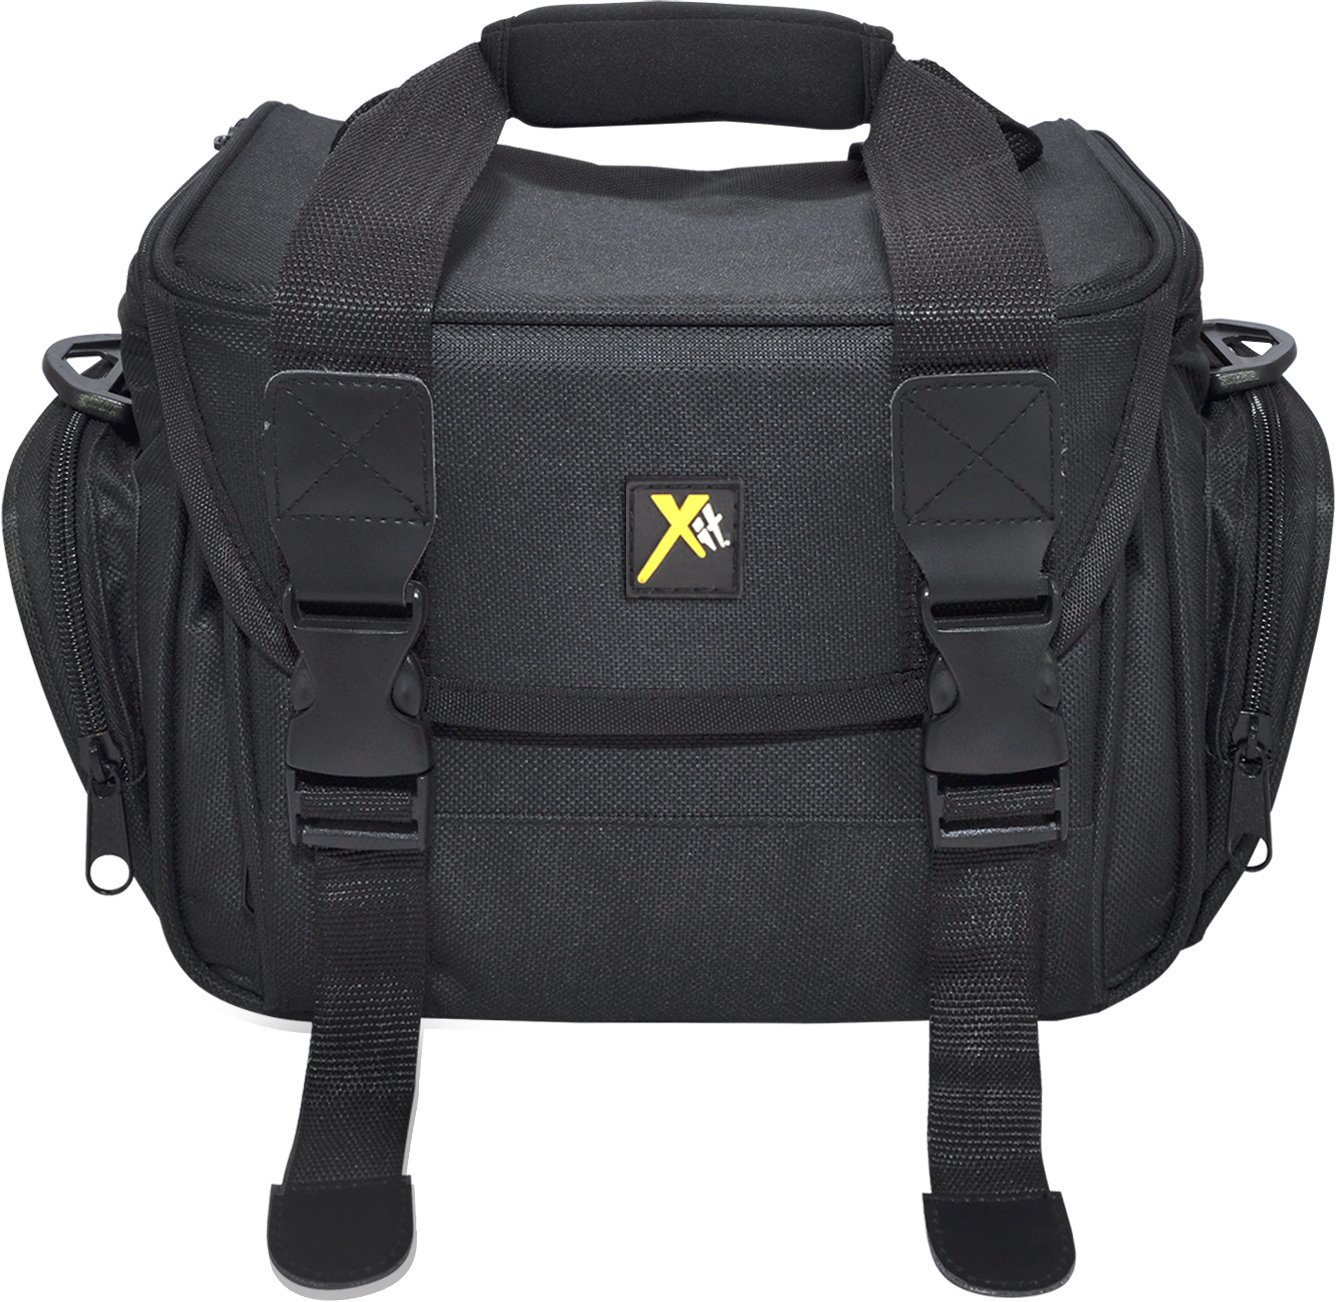 Xit XTCC4 Deluxe Digital Camera/Video Padded Carrying Case, Medium (Black) by Xit